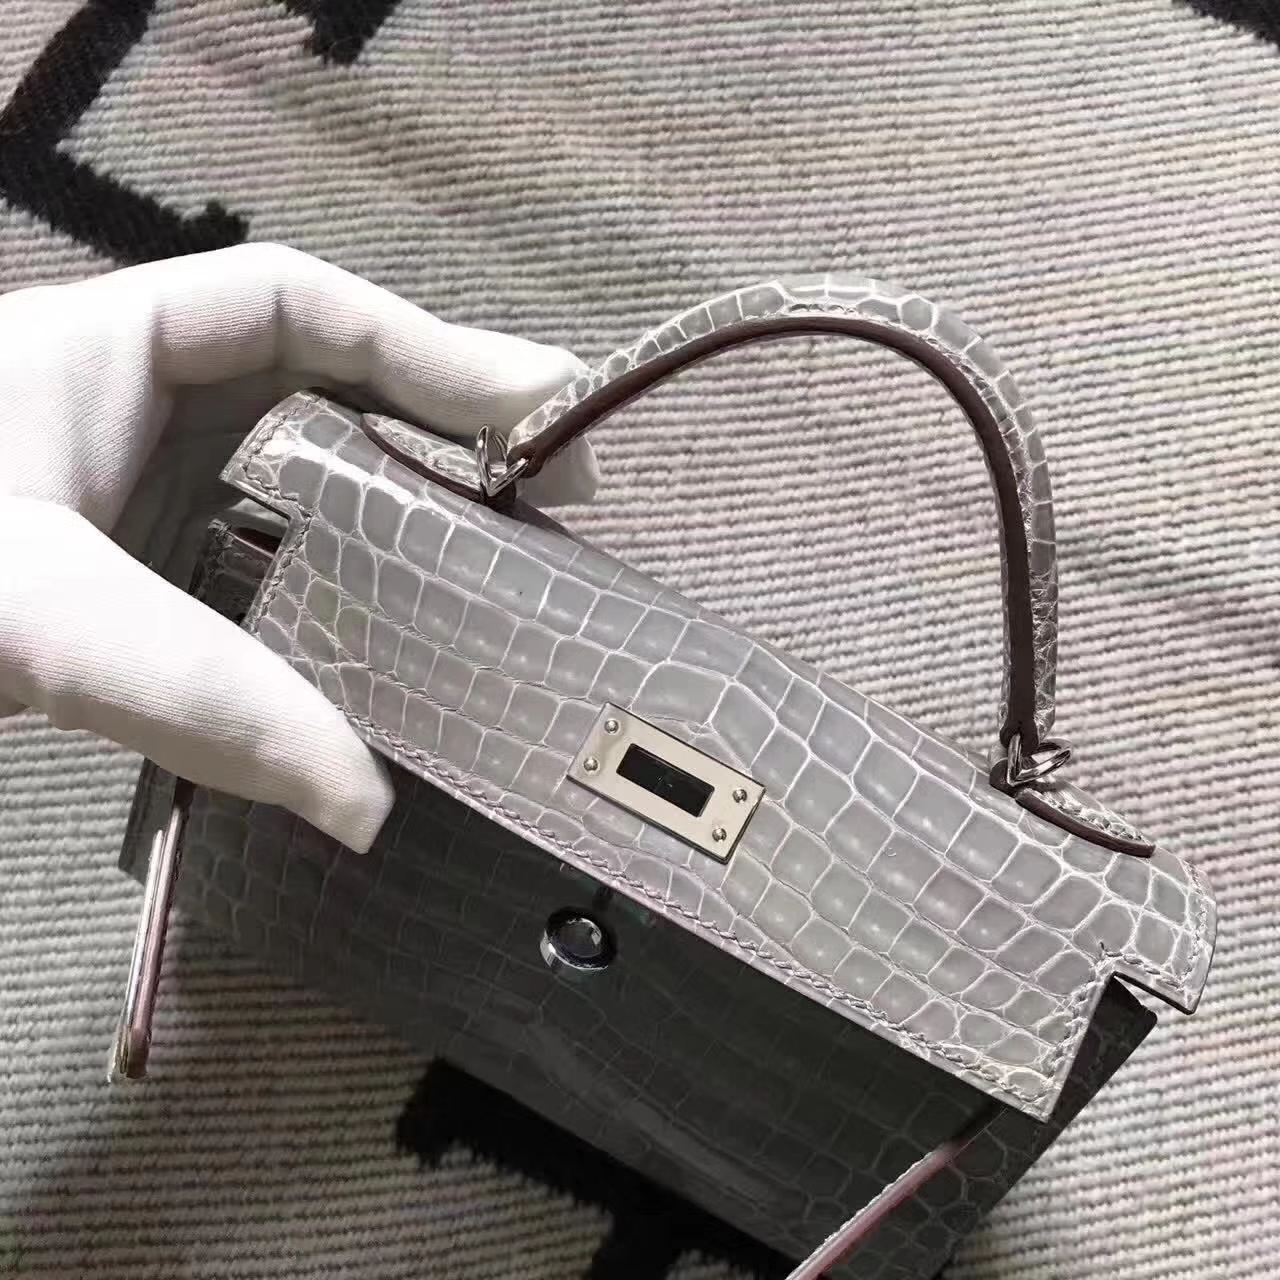 Wholesale Hermes Minikelly-2 Clutch Bag in CK81Gris Tourterelle Crocodile Leather